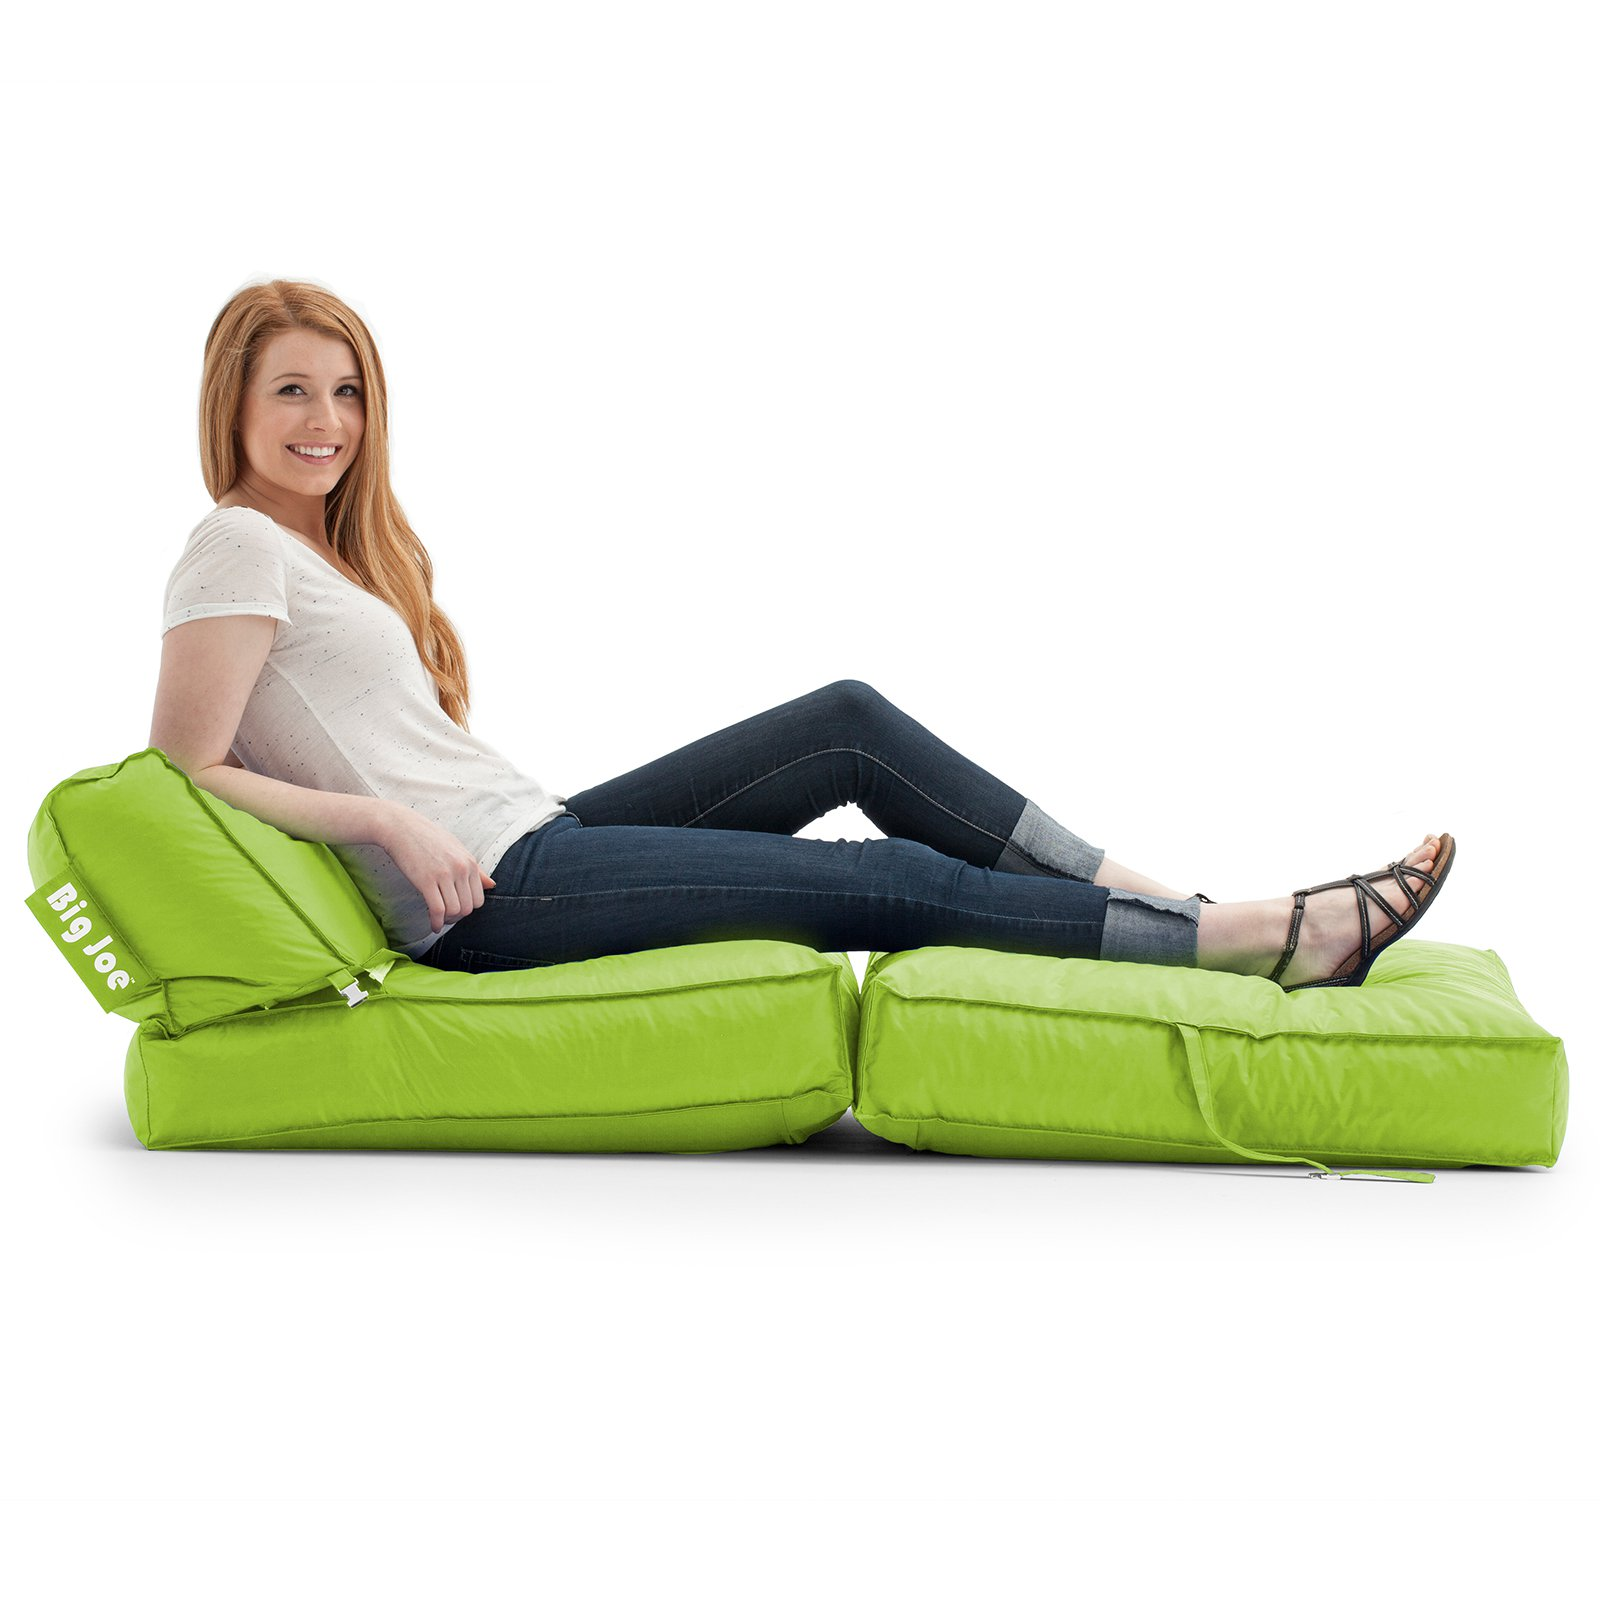 Big Joe Flip Bean Bag Lounger